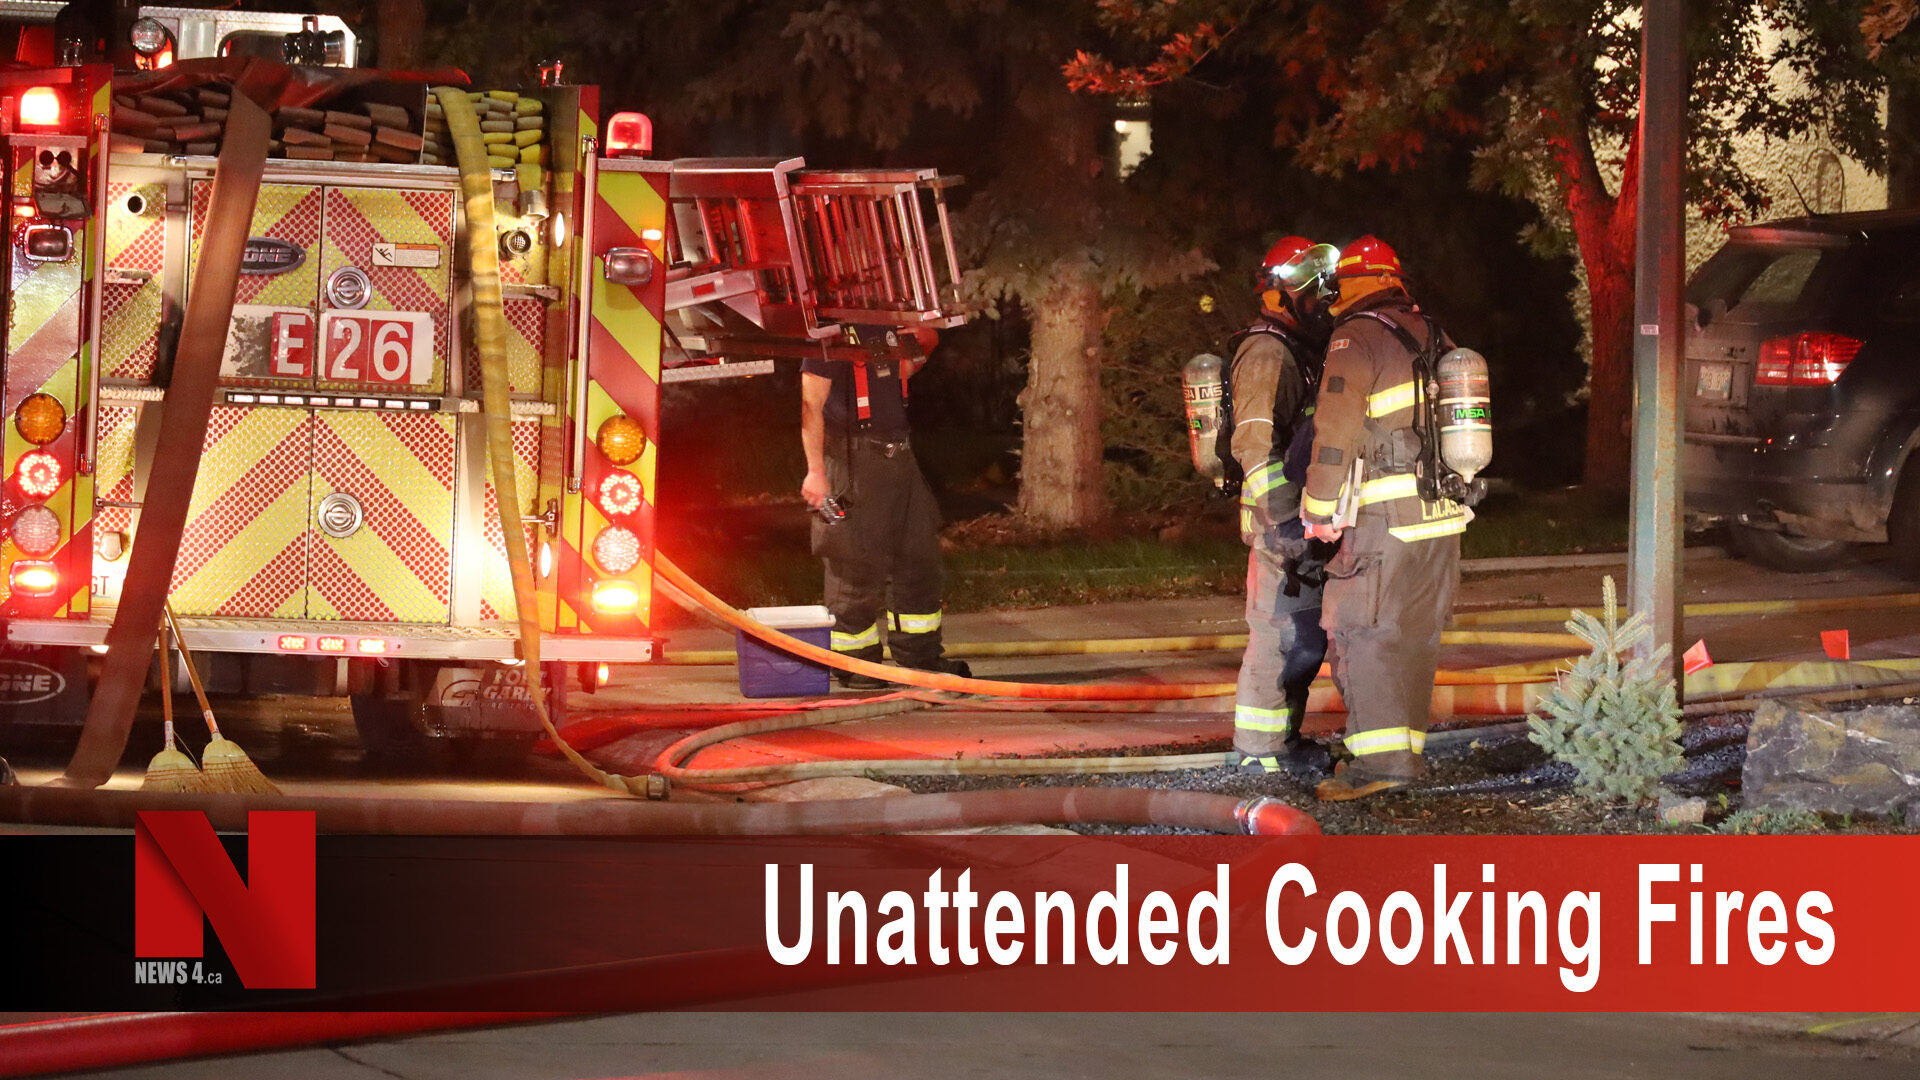 Unattended cooking fires